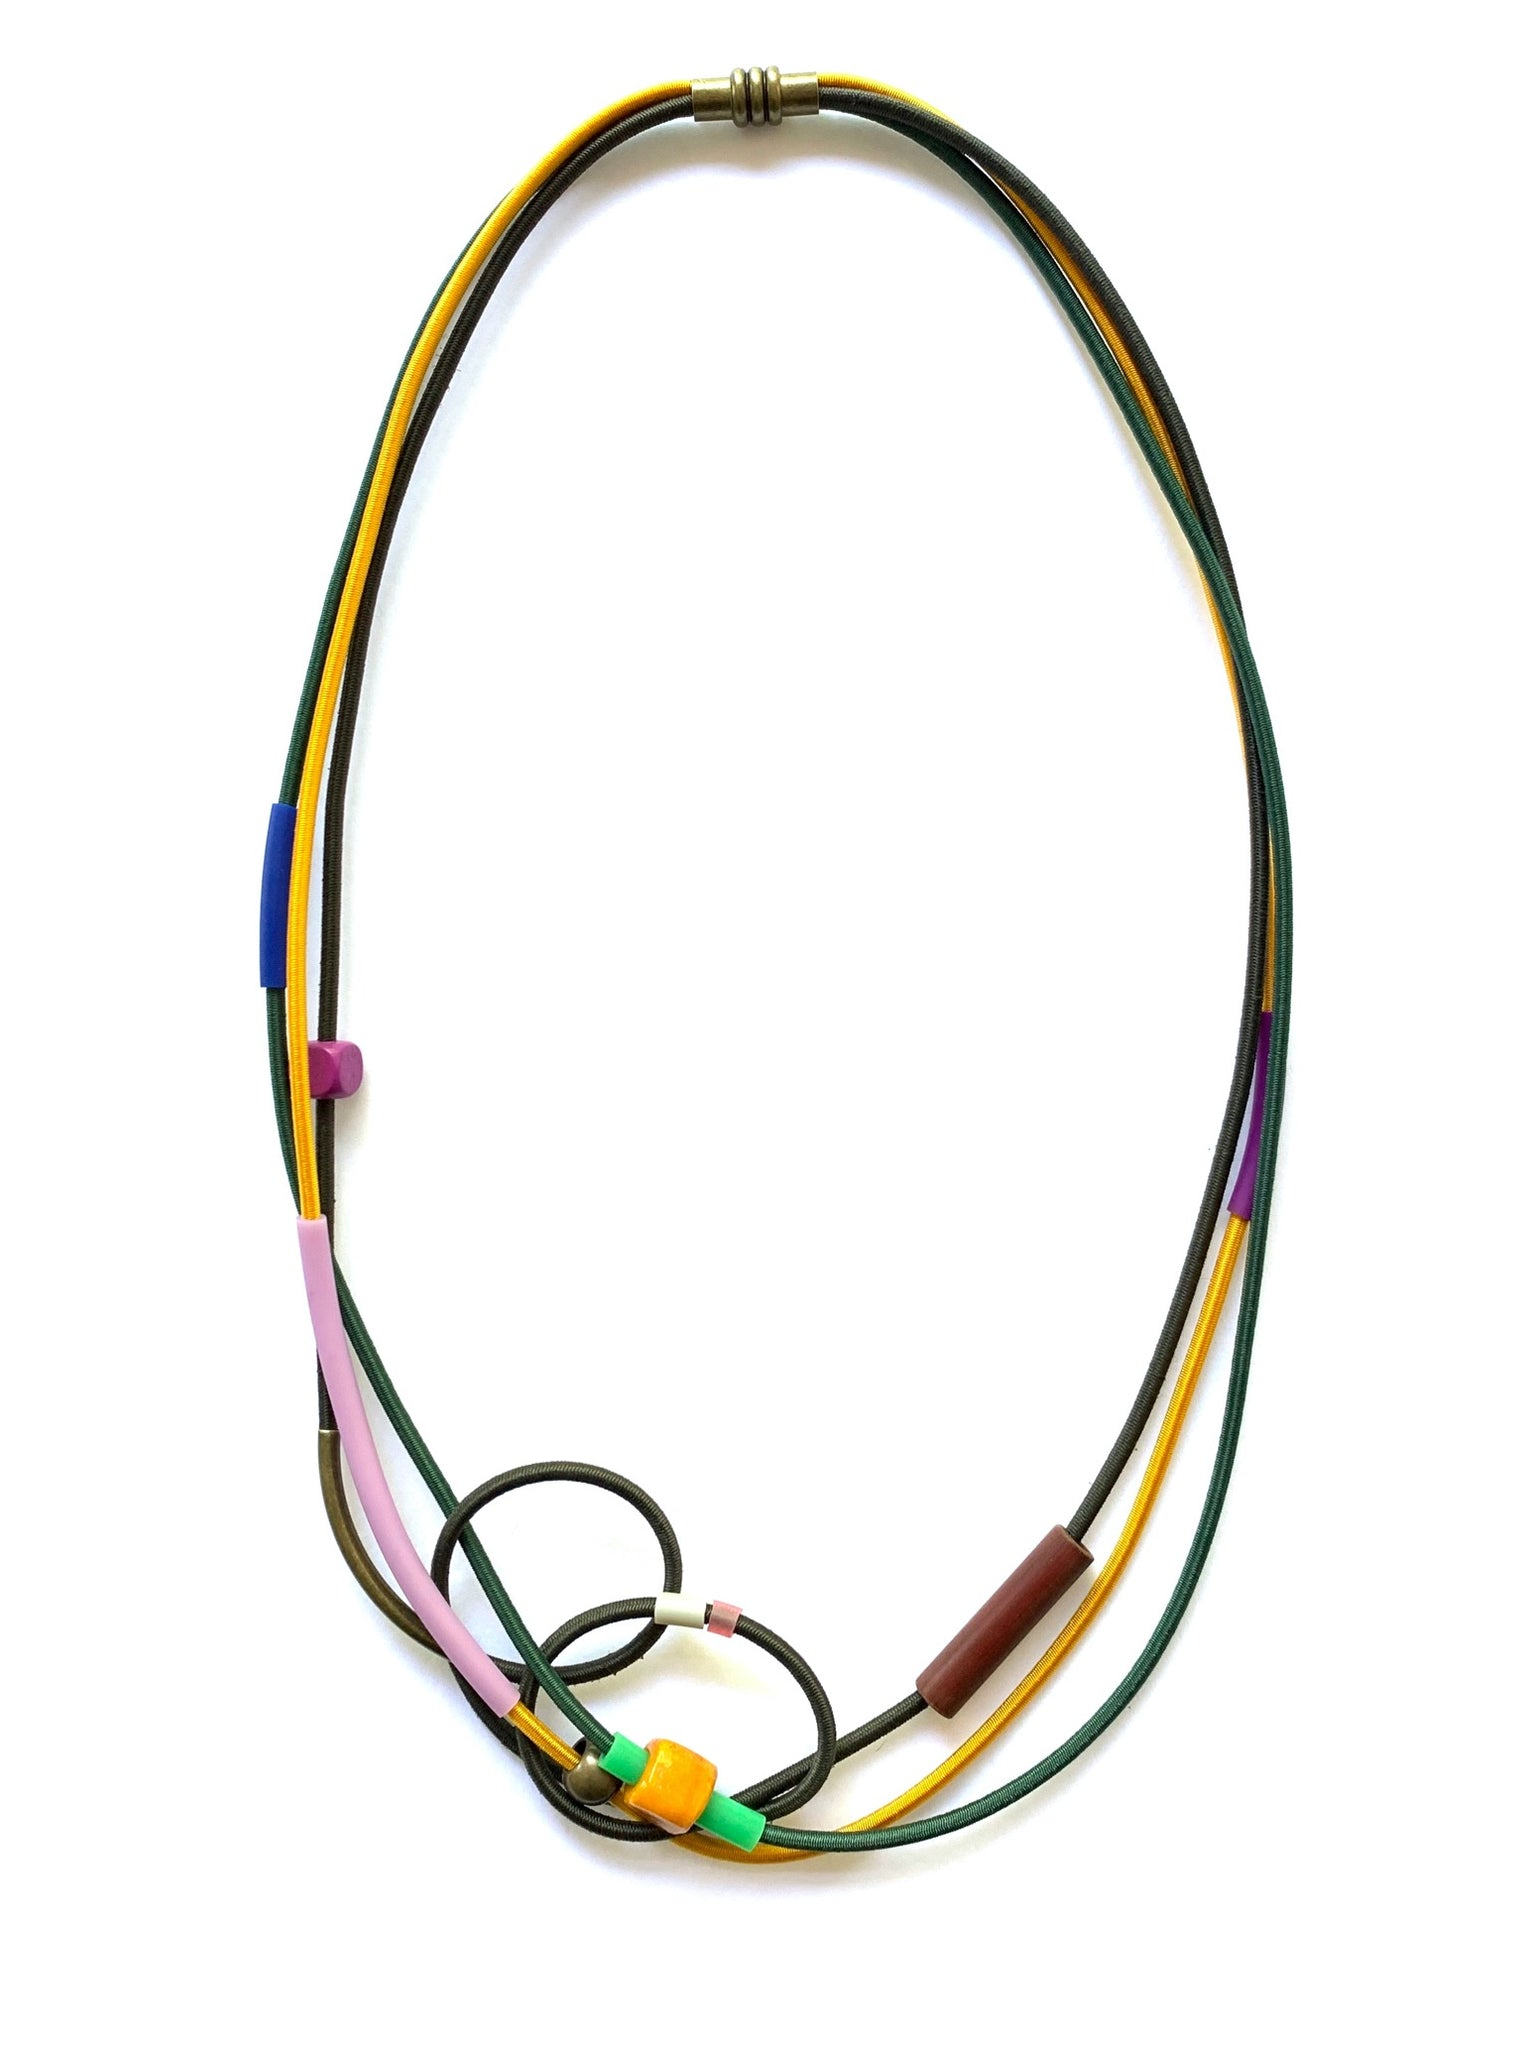 This piece is made with shock cord, silicone tubing,mixed beads and a magnetic clasp. It hangs 68cm long.